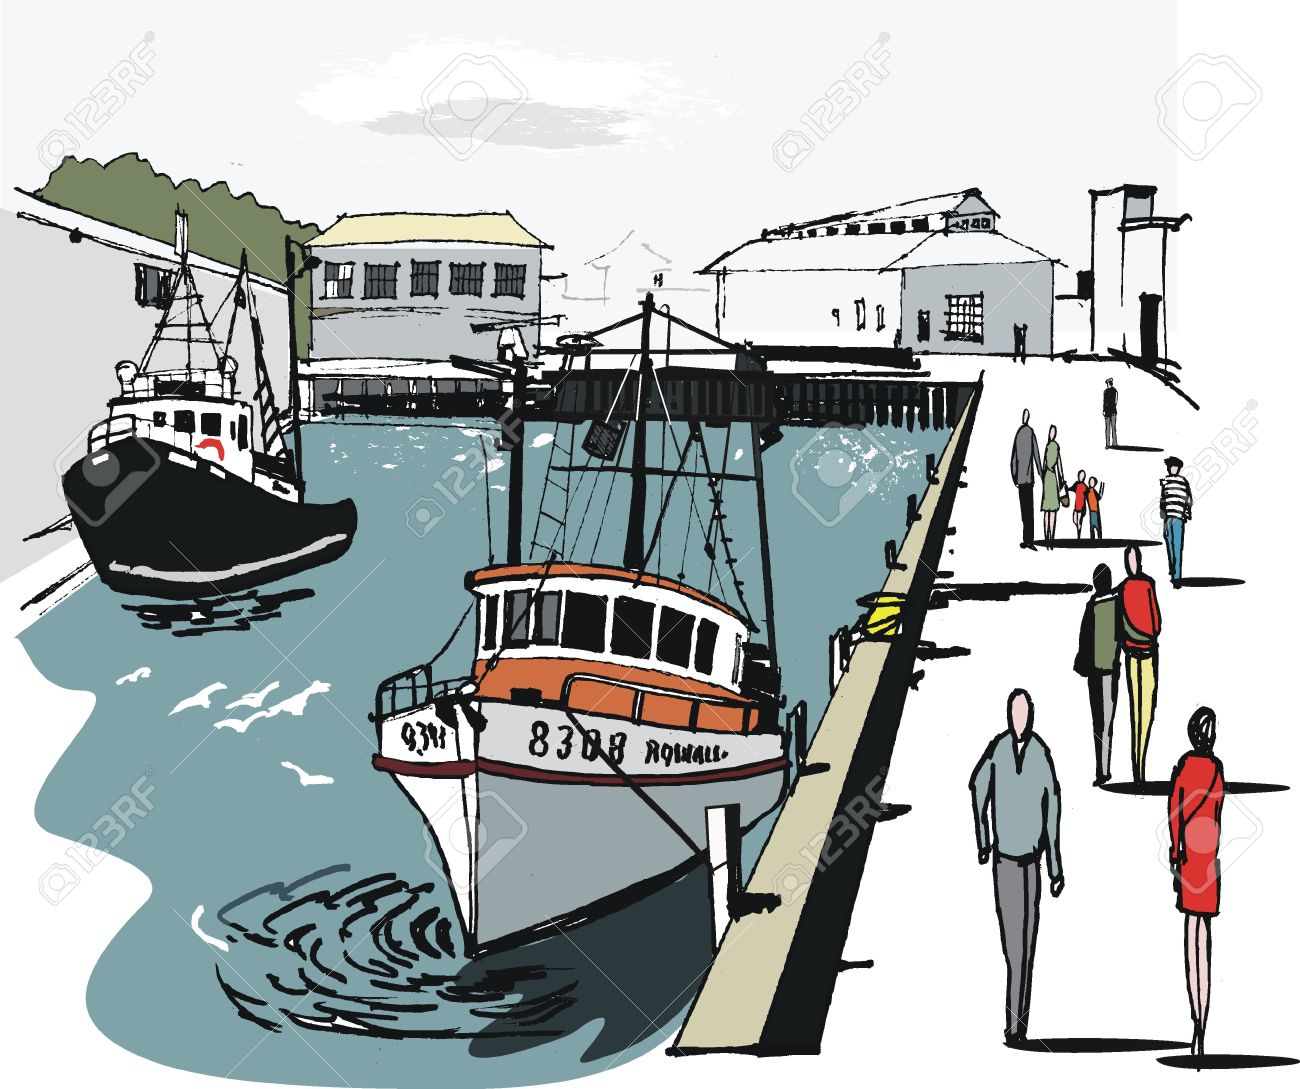 Harbor clipart #9, Download drawings